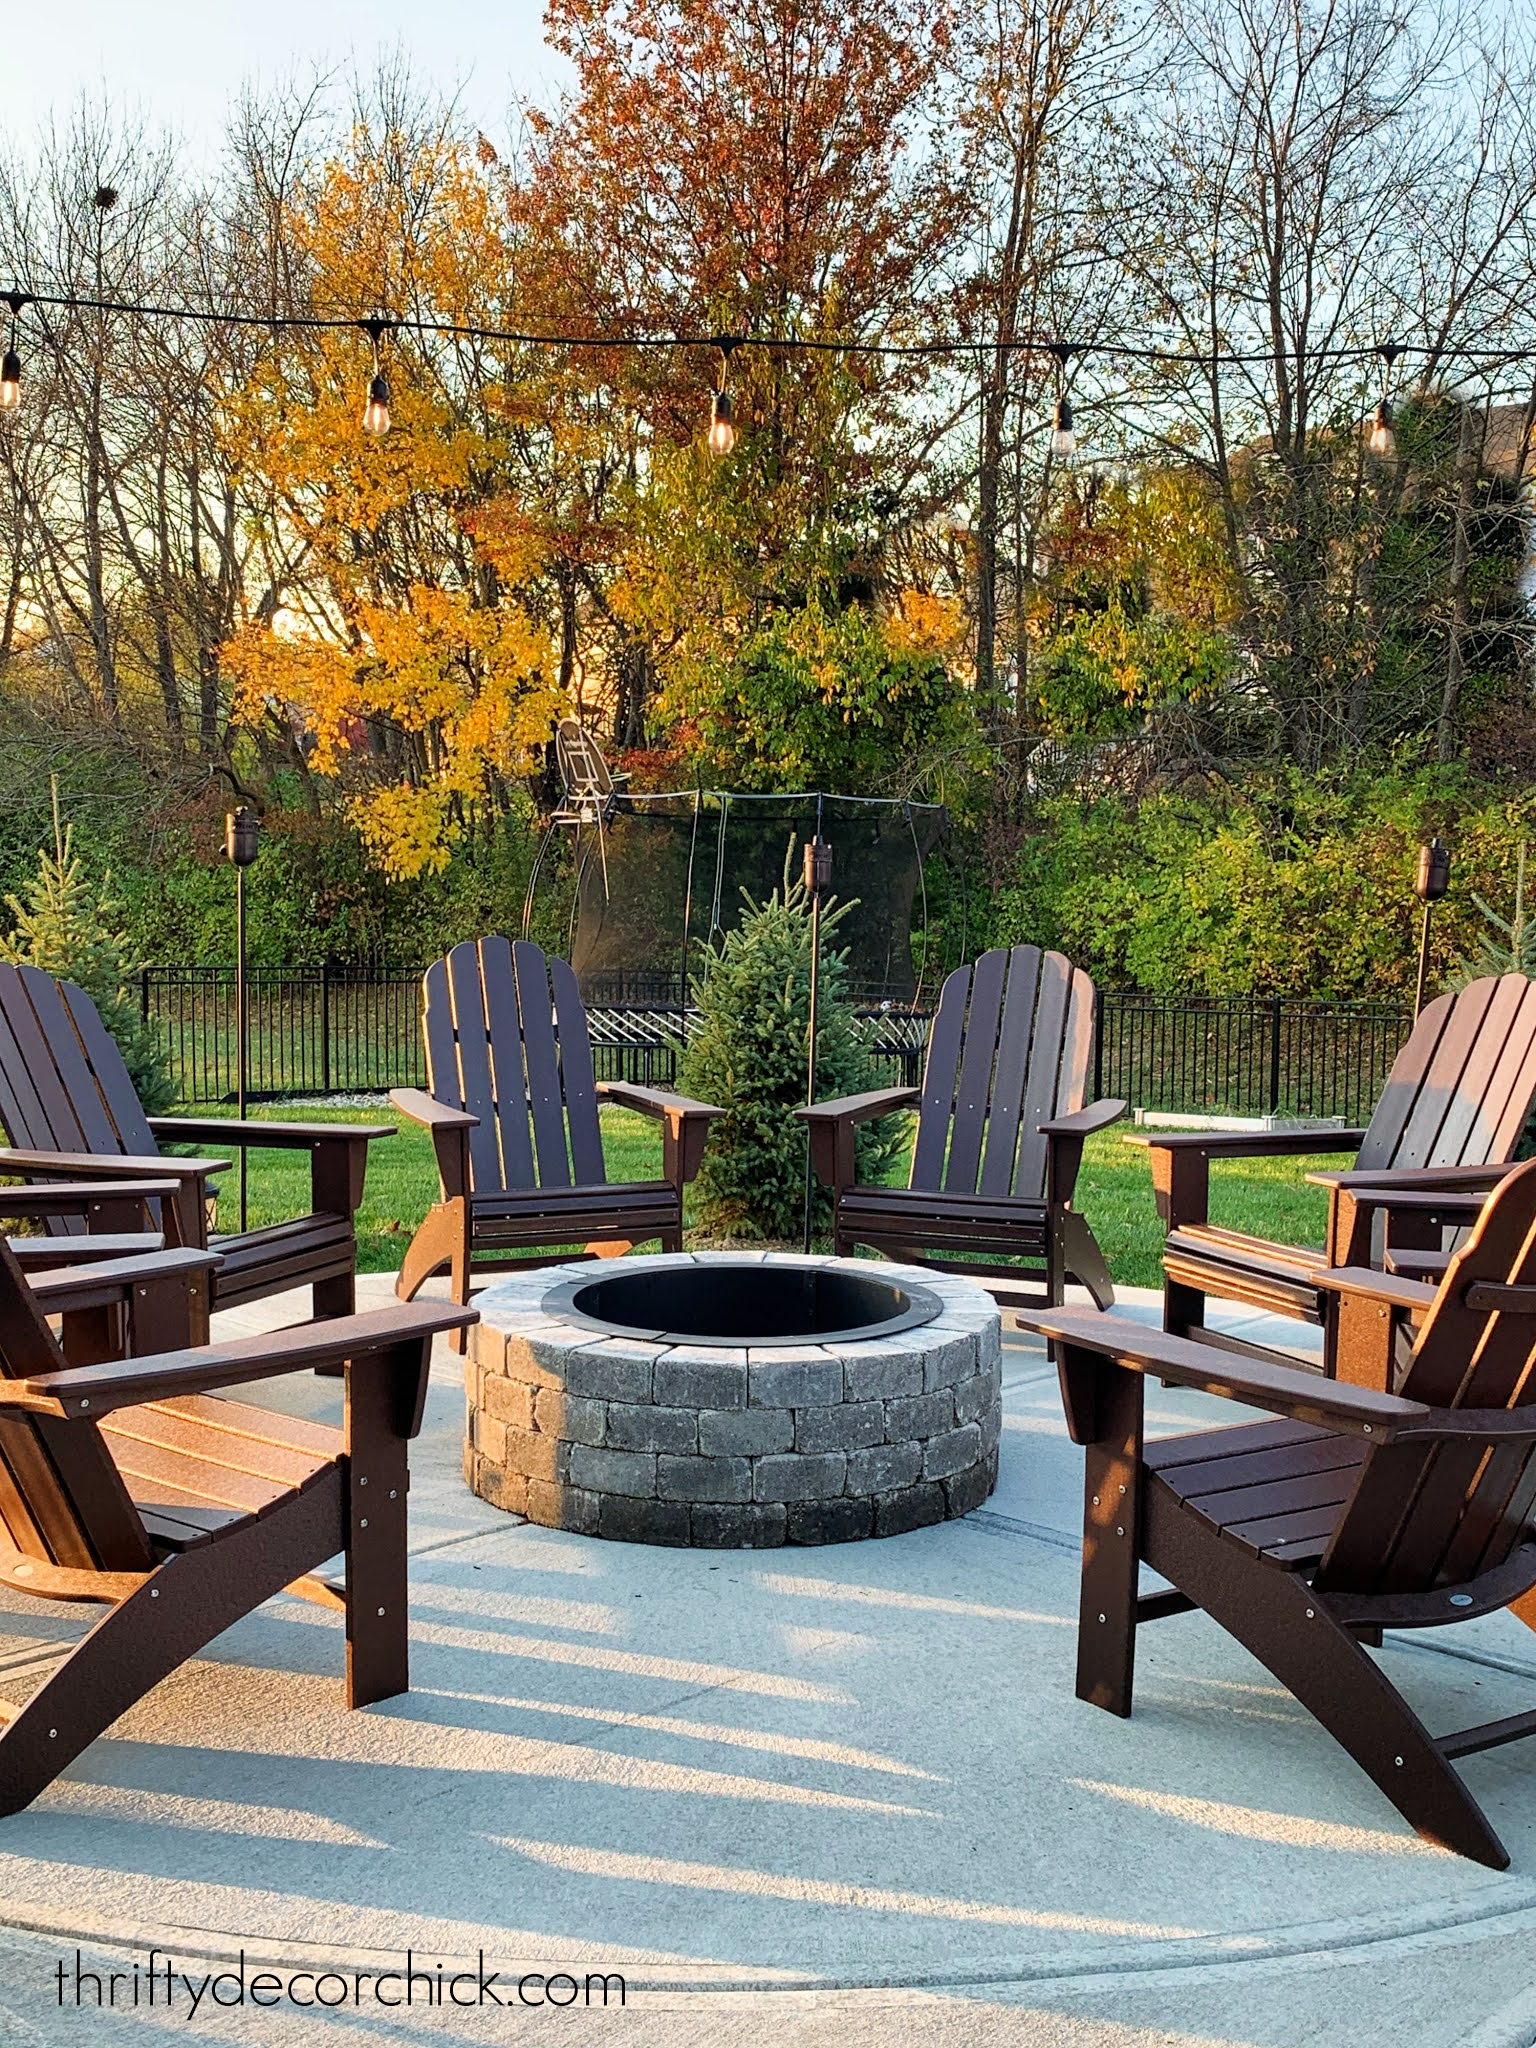 our cozy round patio fire pit with new